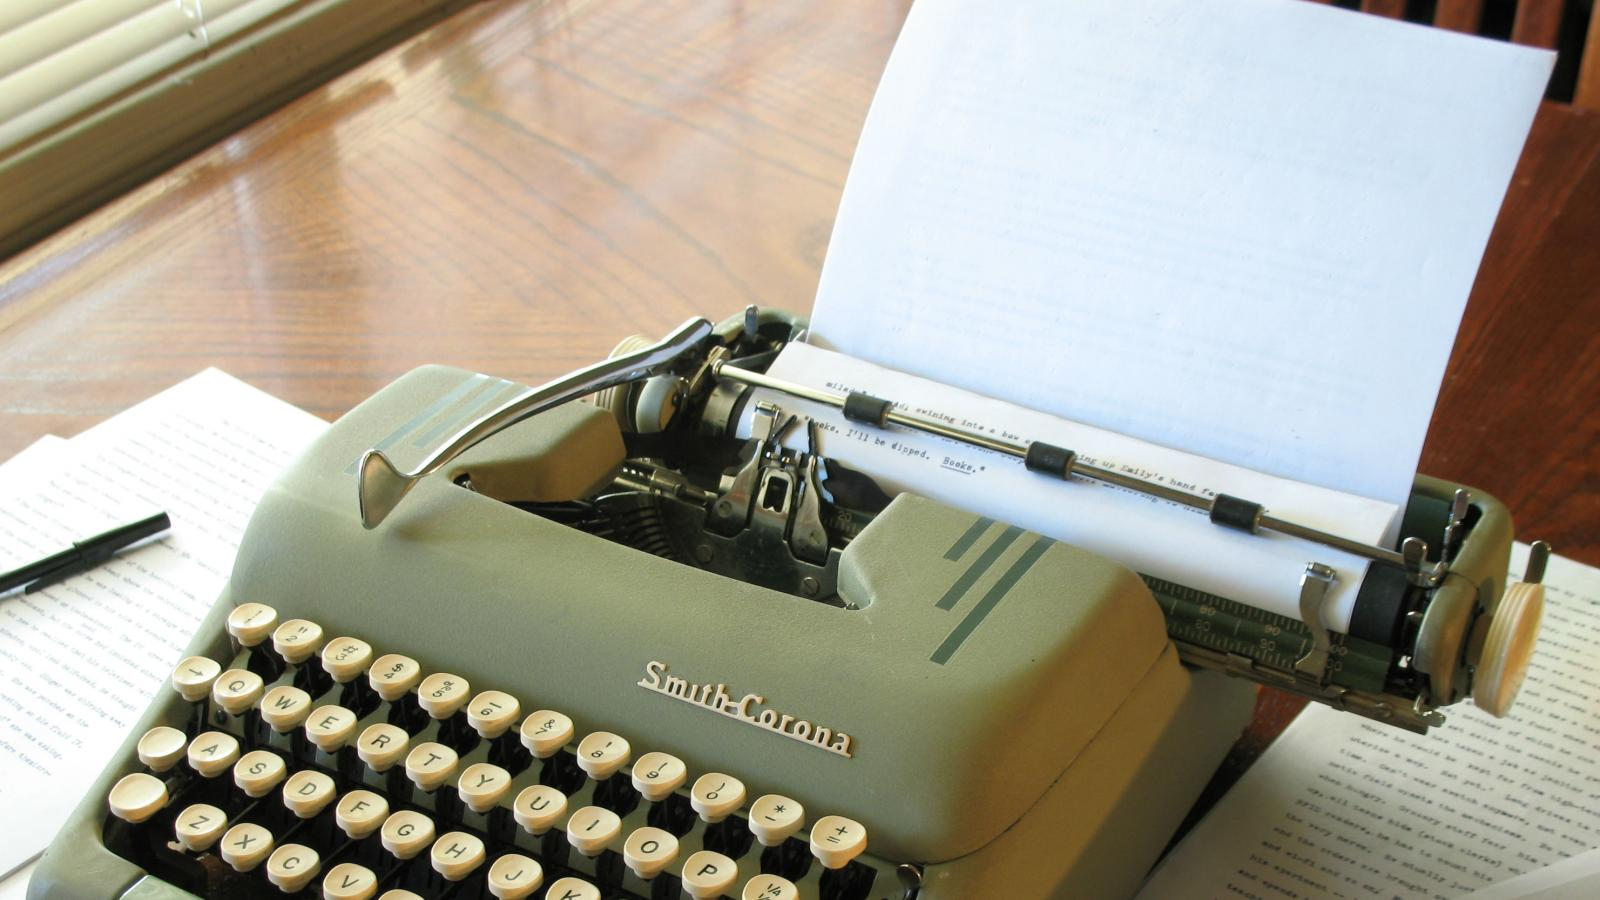 Smith Corona with manuscript